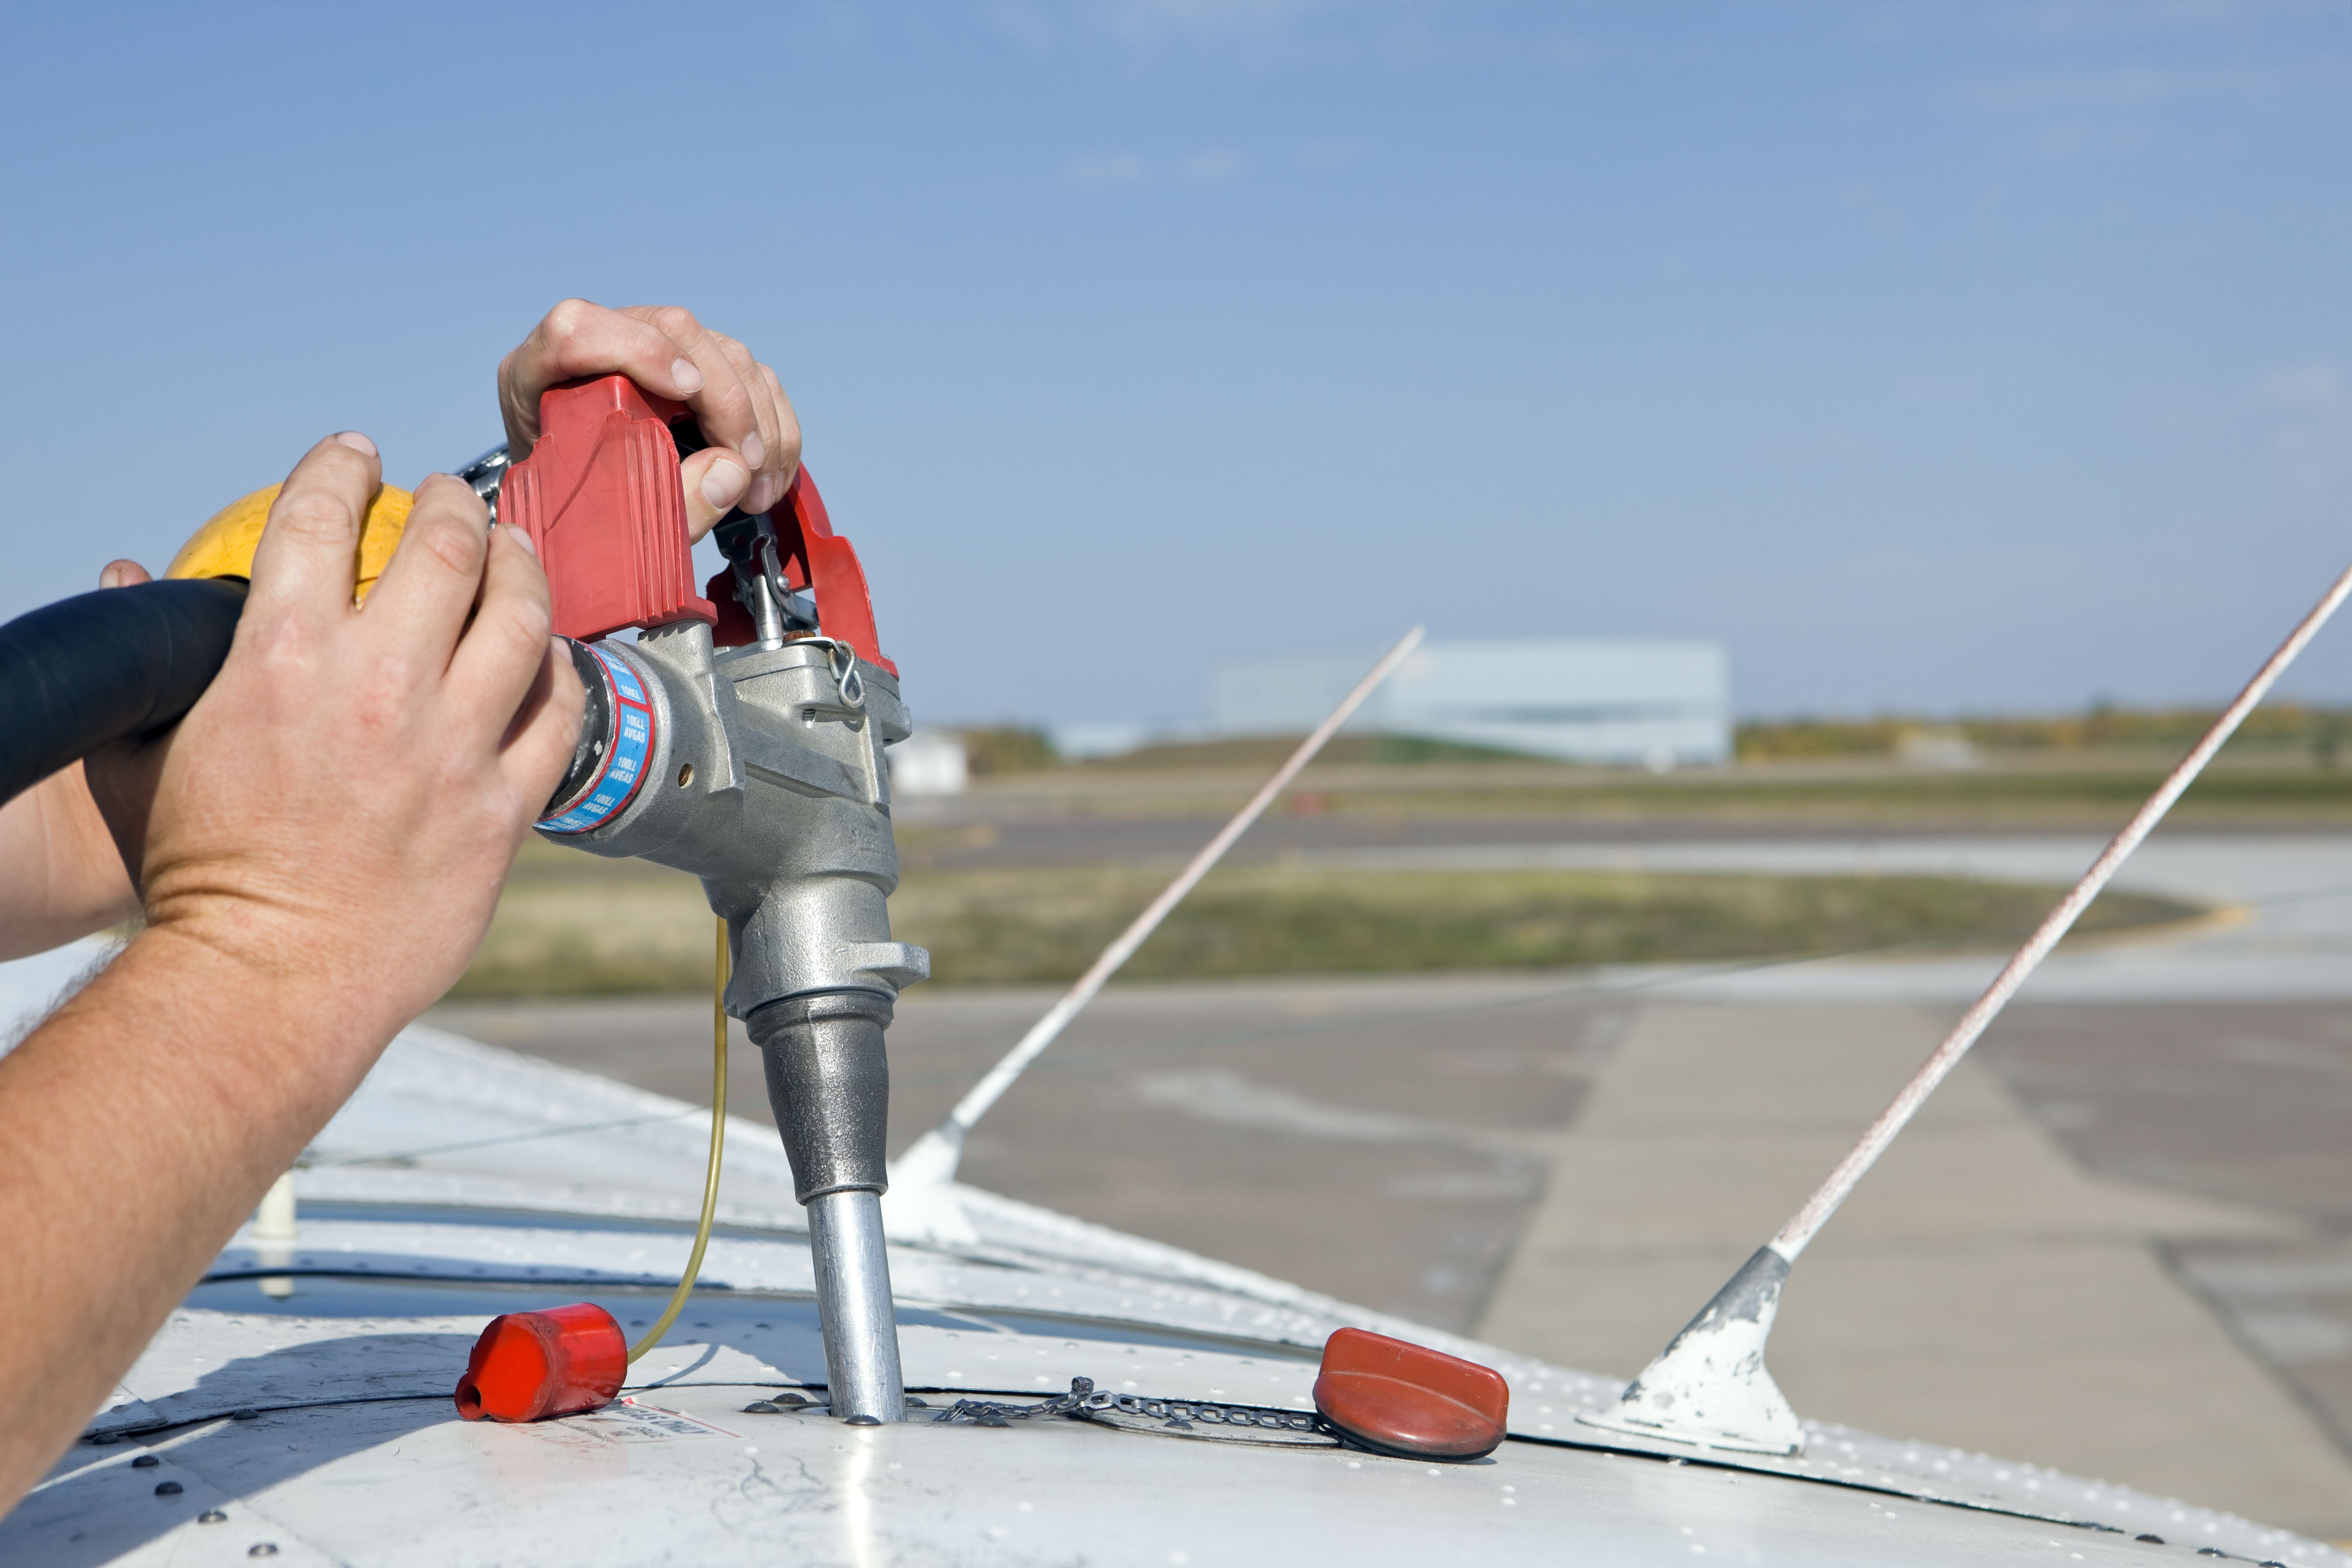 learn about aircraft rental and wet vs dry rates